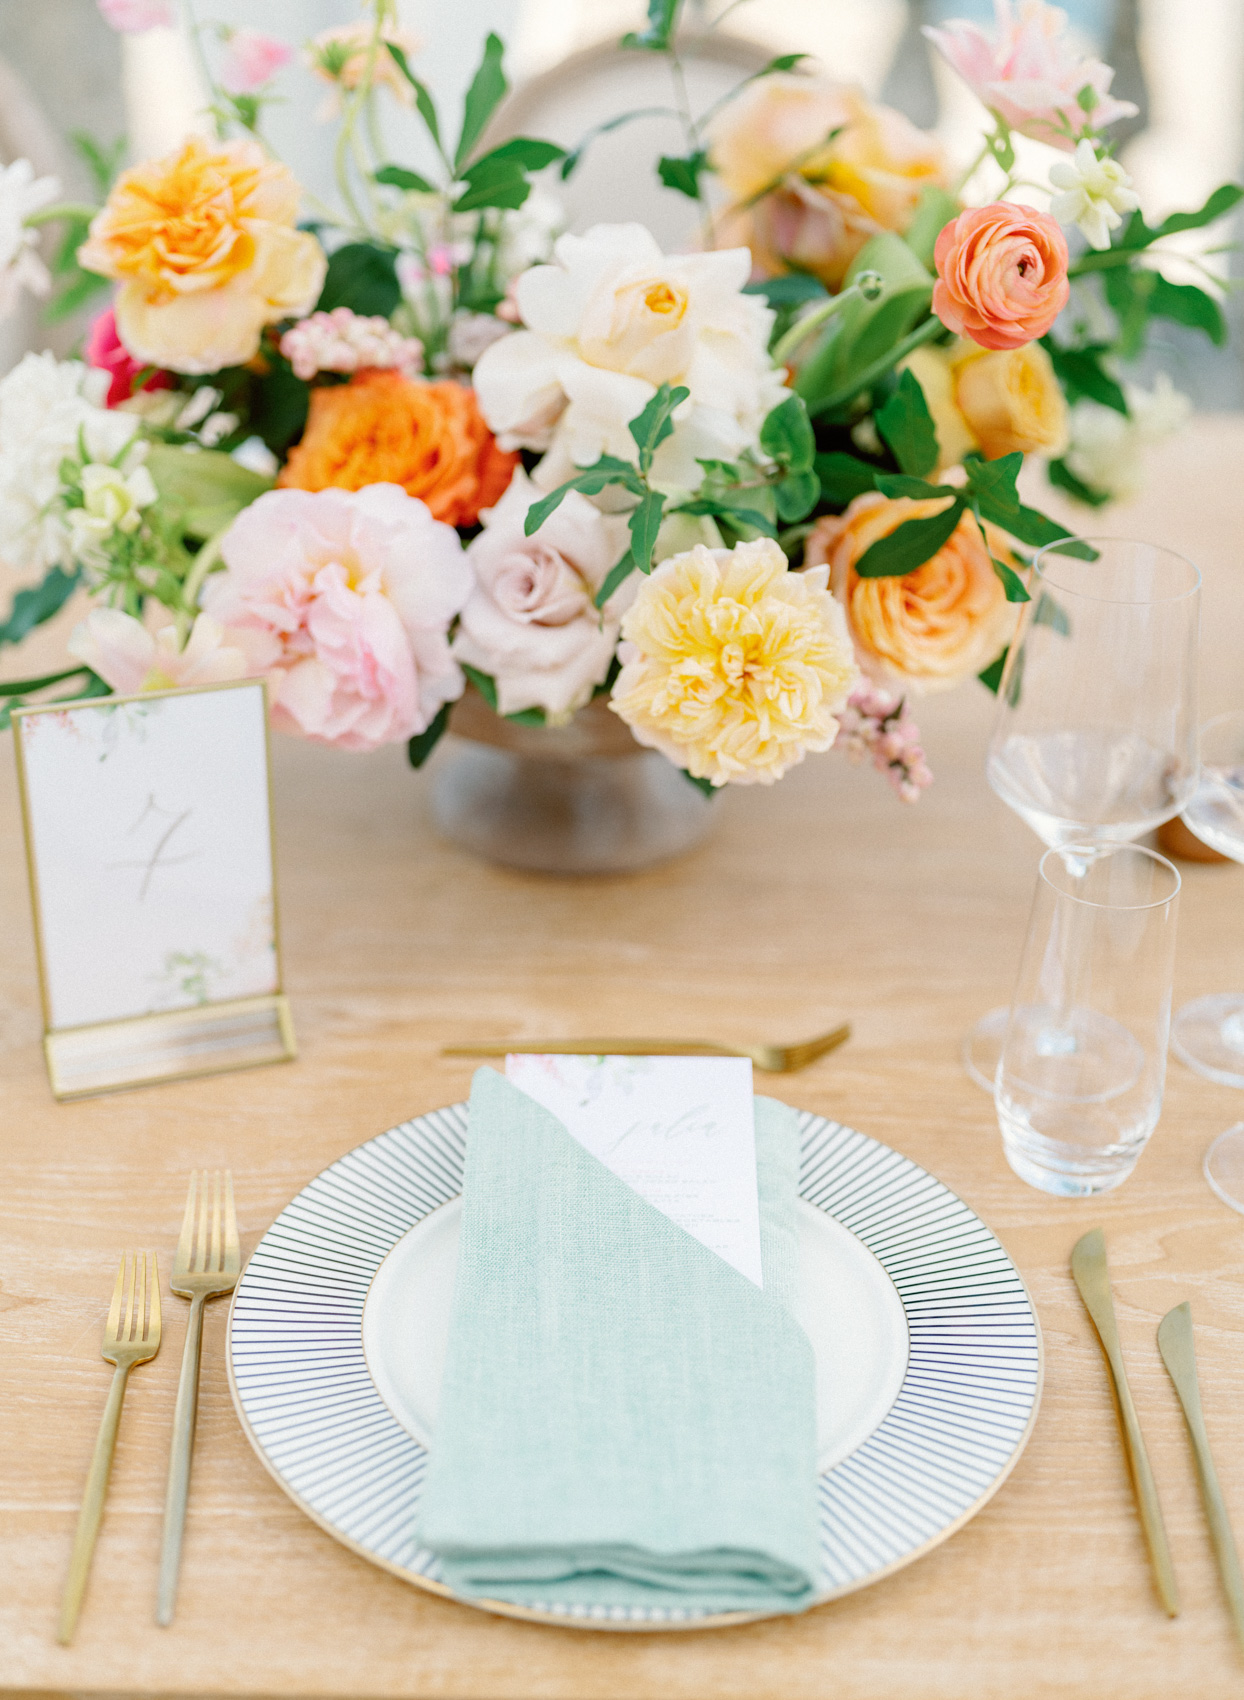 pastel wedding reception place setting with flowers